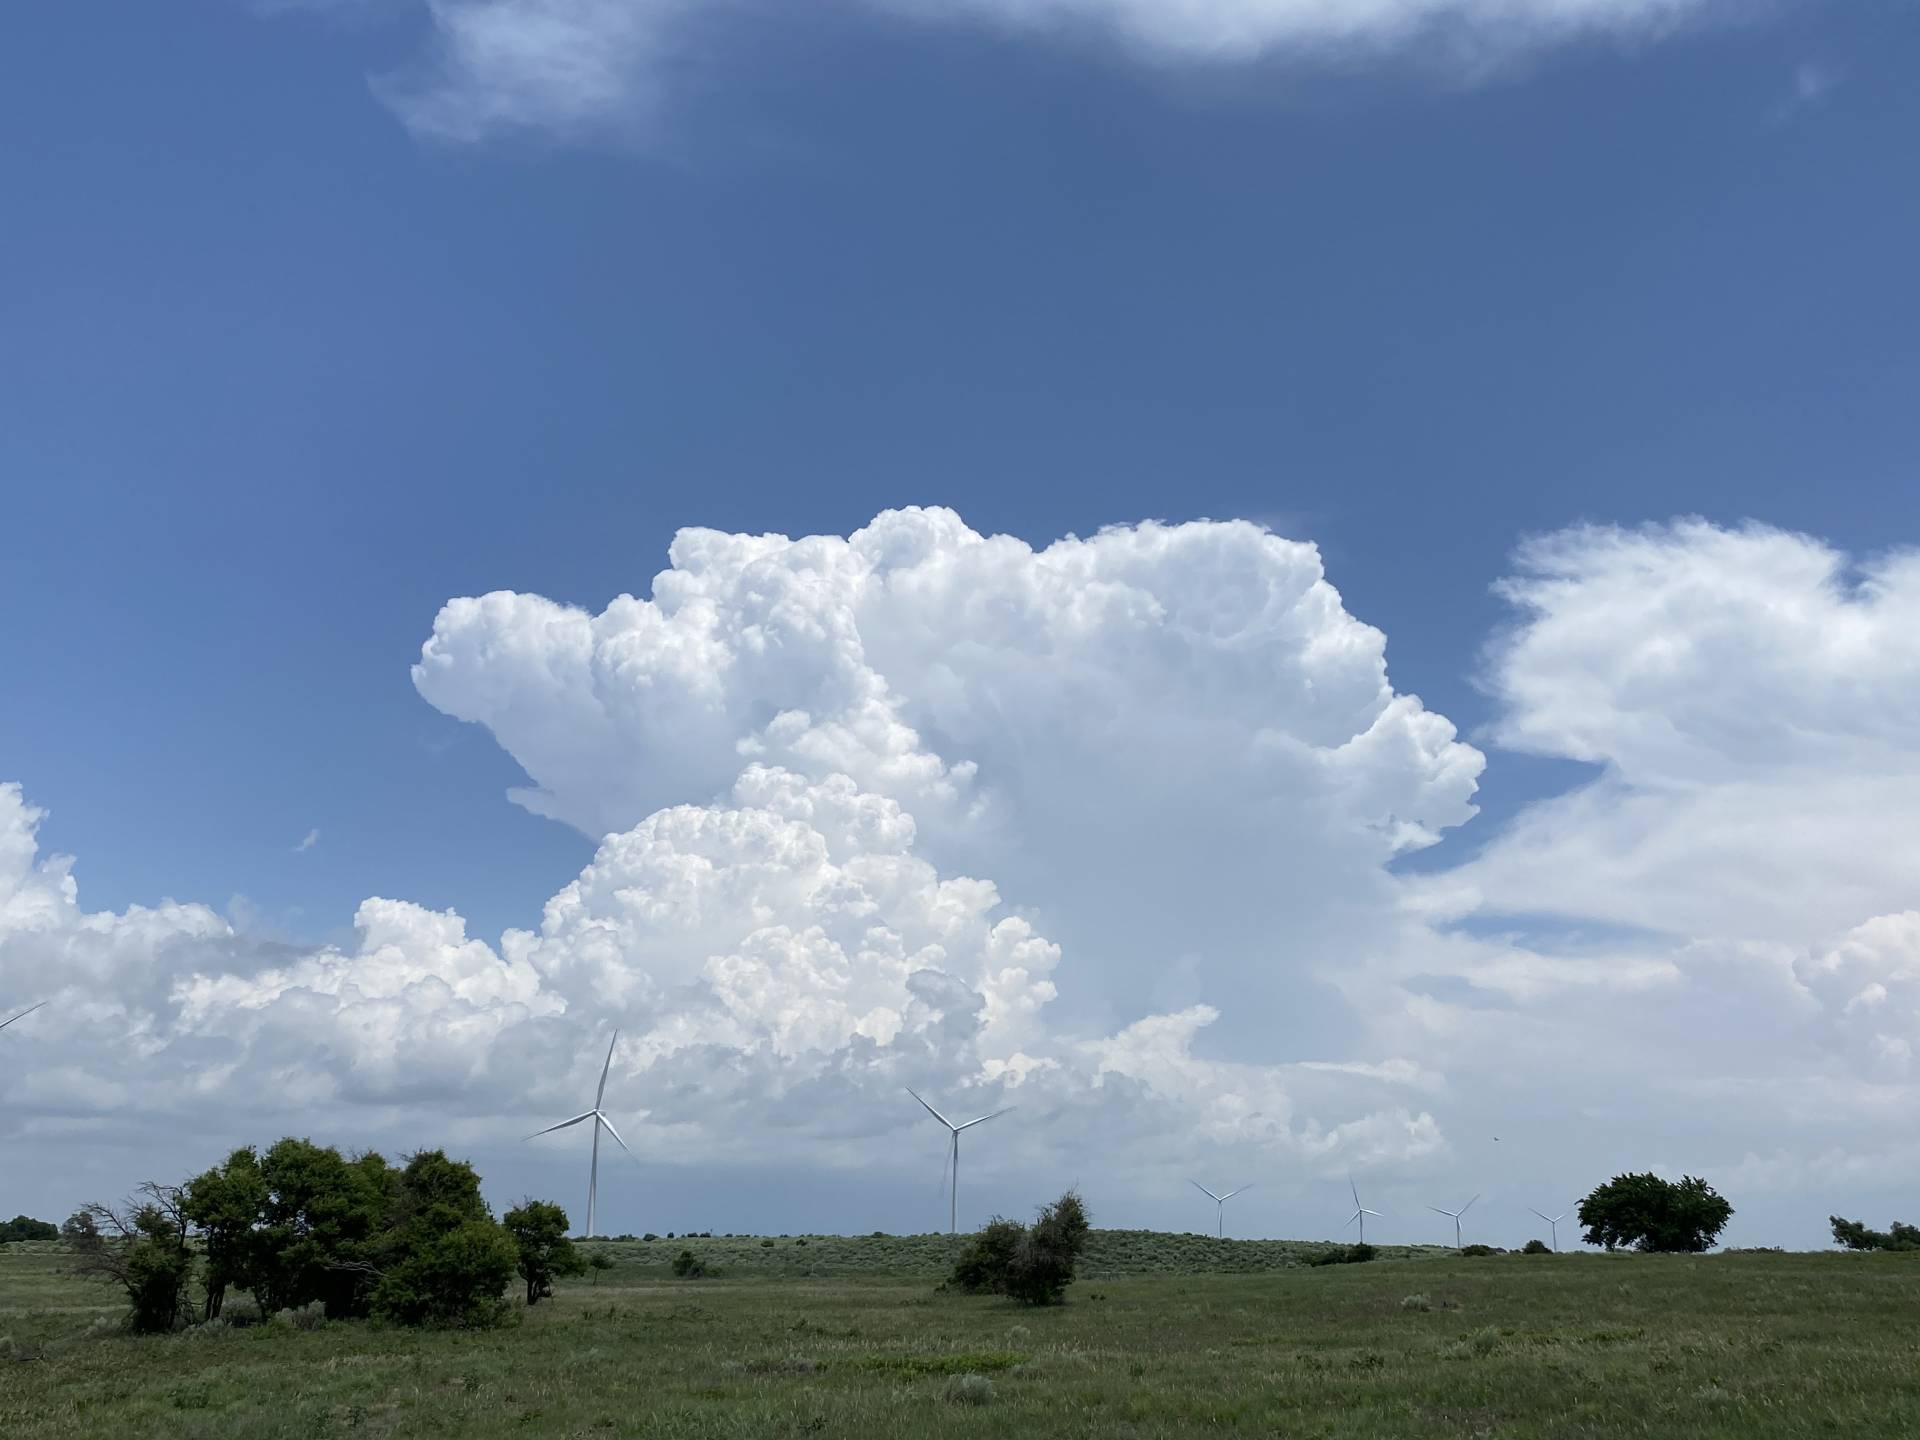 Boundary and parameter chasing in western Oklahoma today.